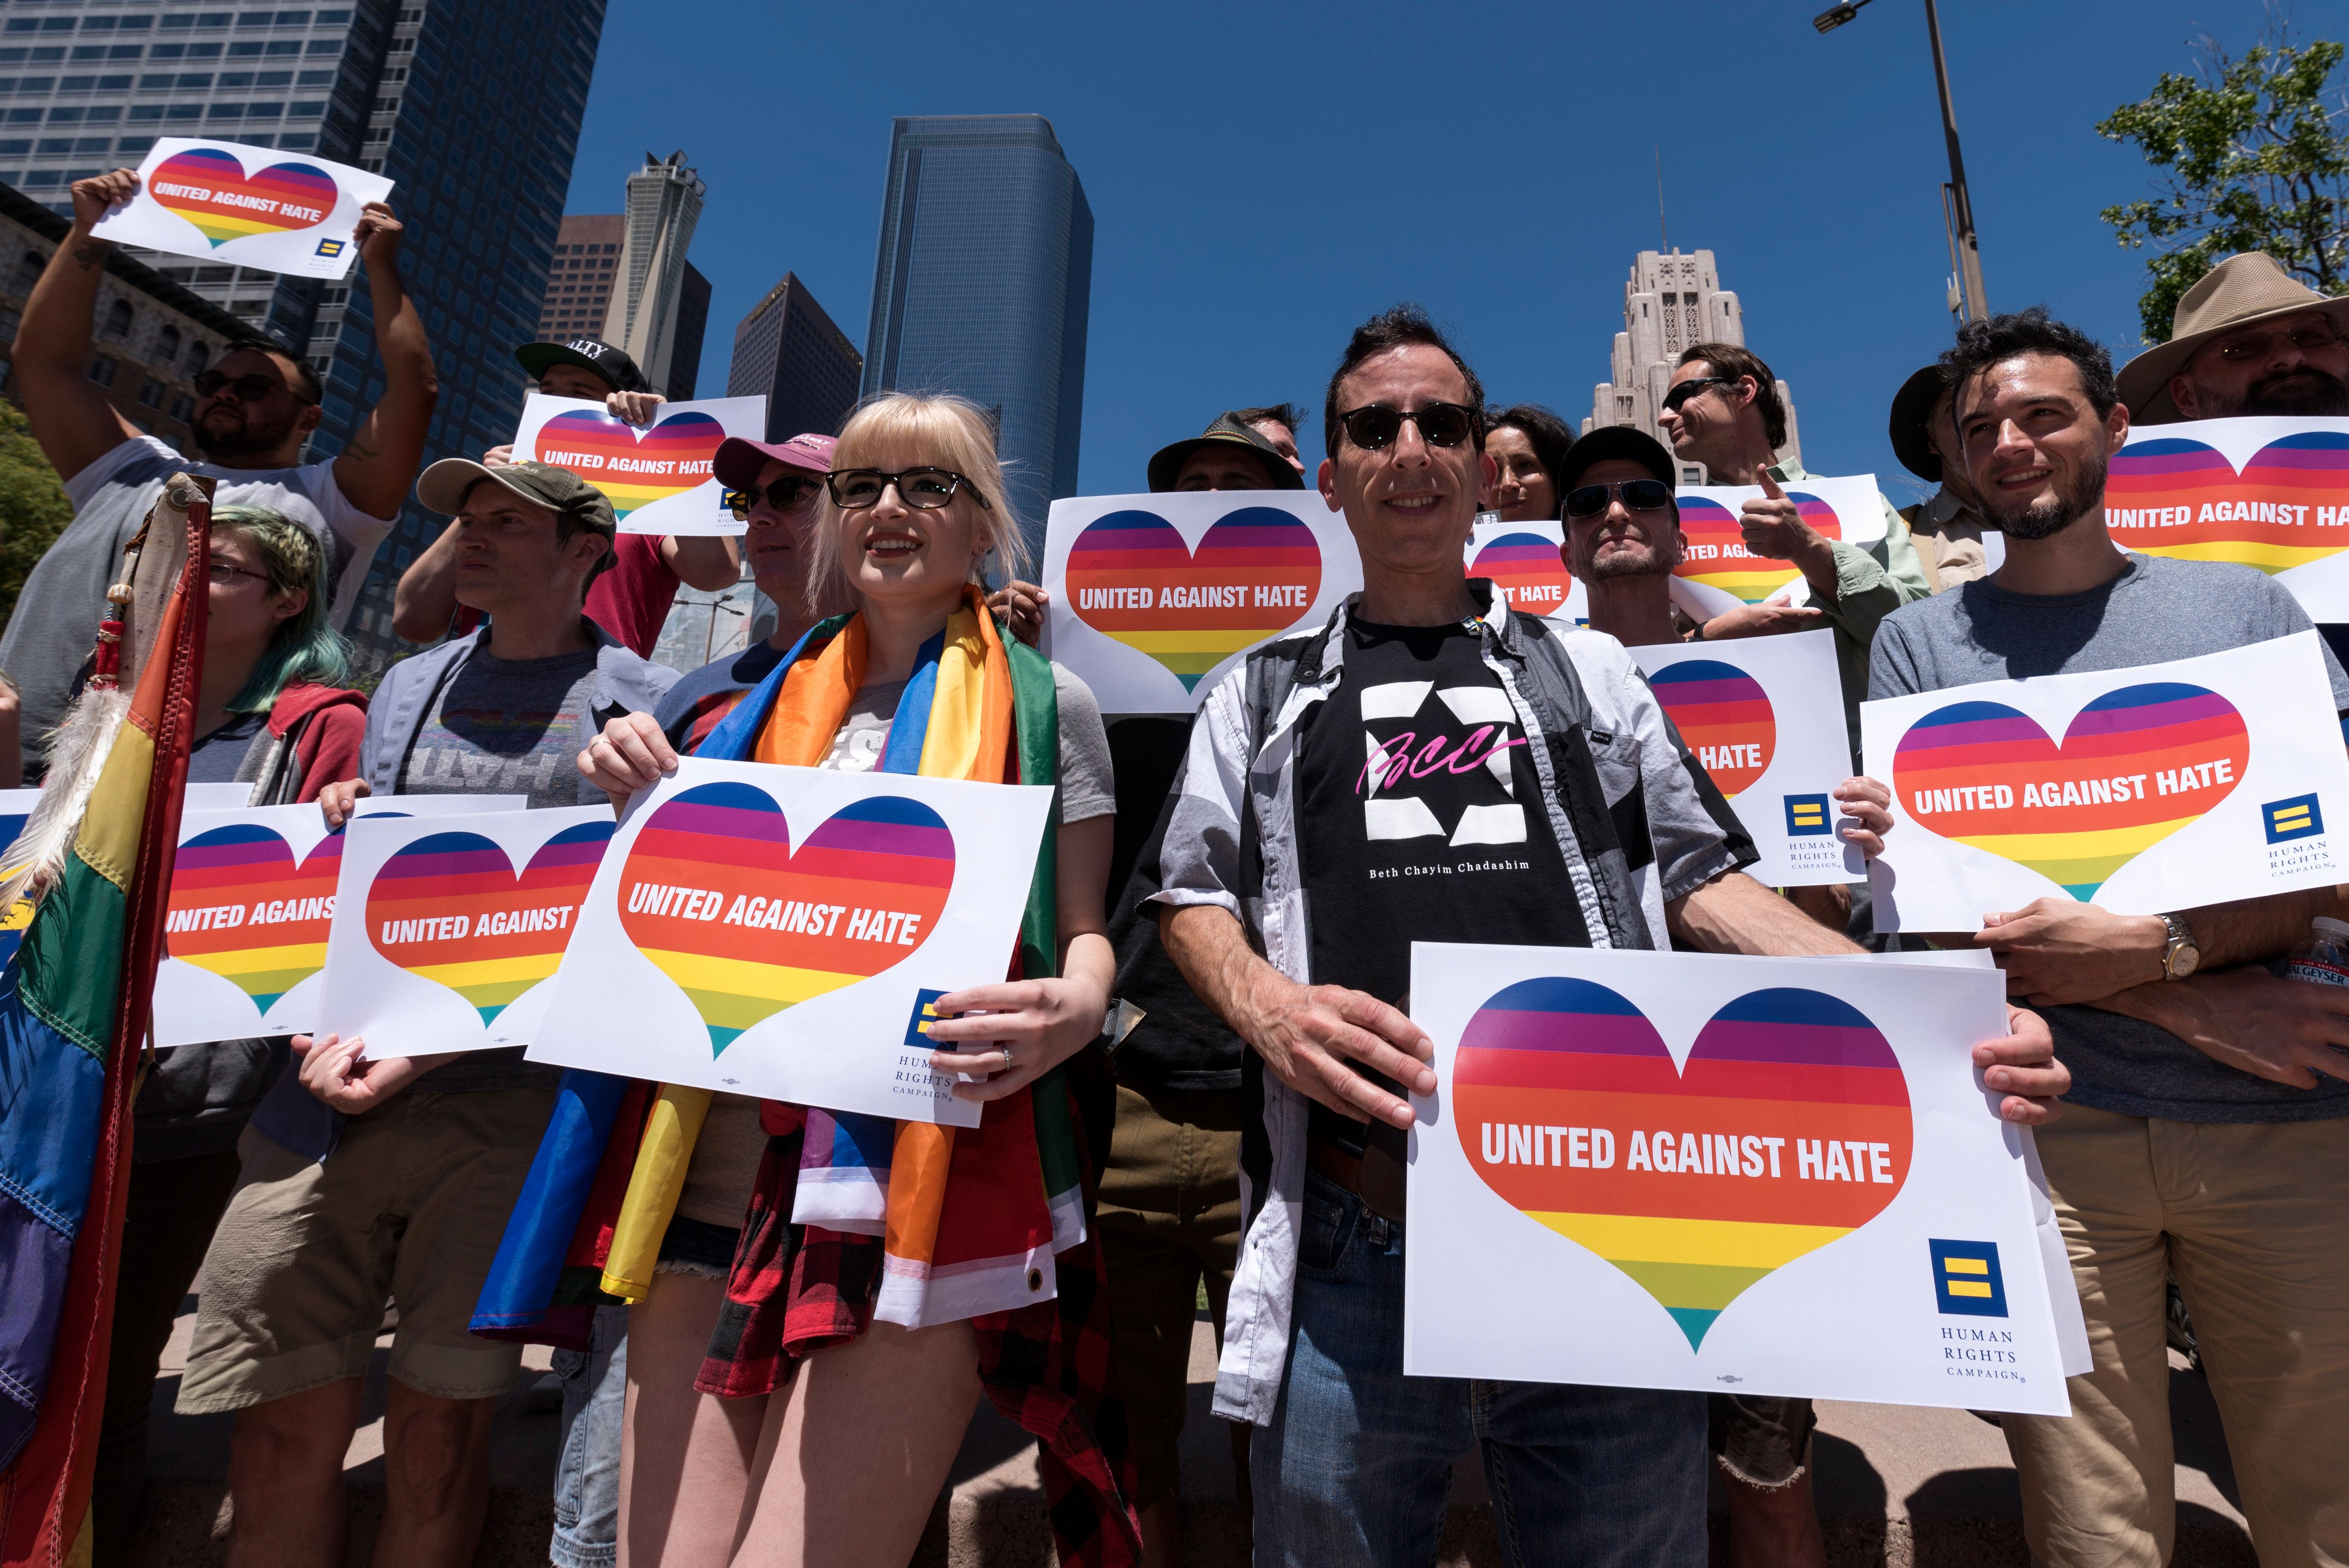 Activists gather to protest the reported detention and deaths of gay men and trans women in Chechnya. Los Angeles, California on May 20, 2017.  (Photo by Ronen Tivony/NurPhoto via Getty Images)